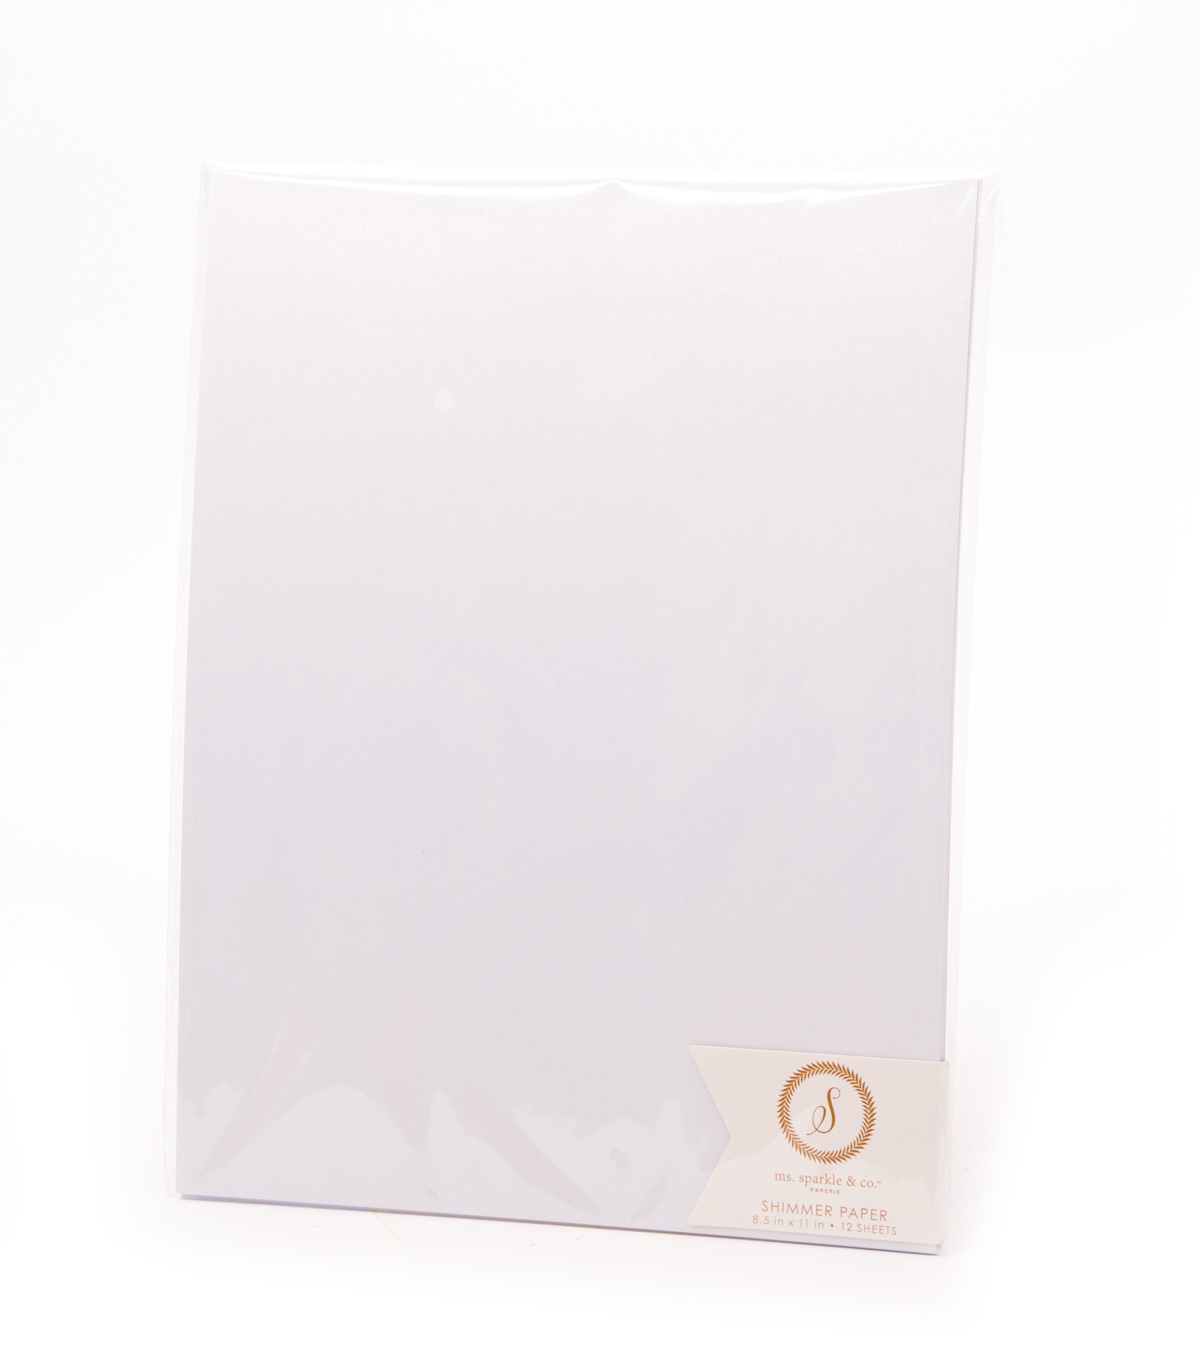 Ms. Sparkle & Co. Pack of 12 8.5\u0027\u0027x11\u0027\u0027 Shimmer Papers-White